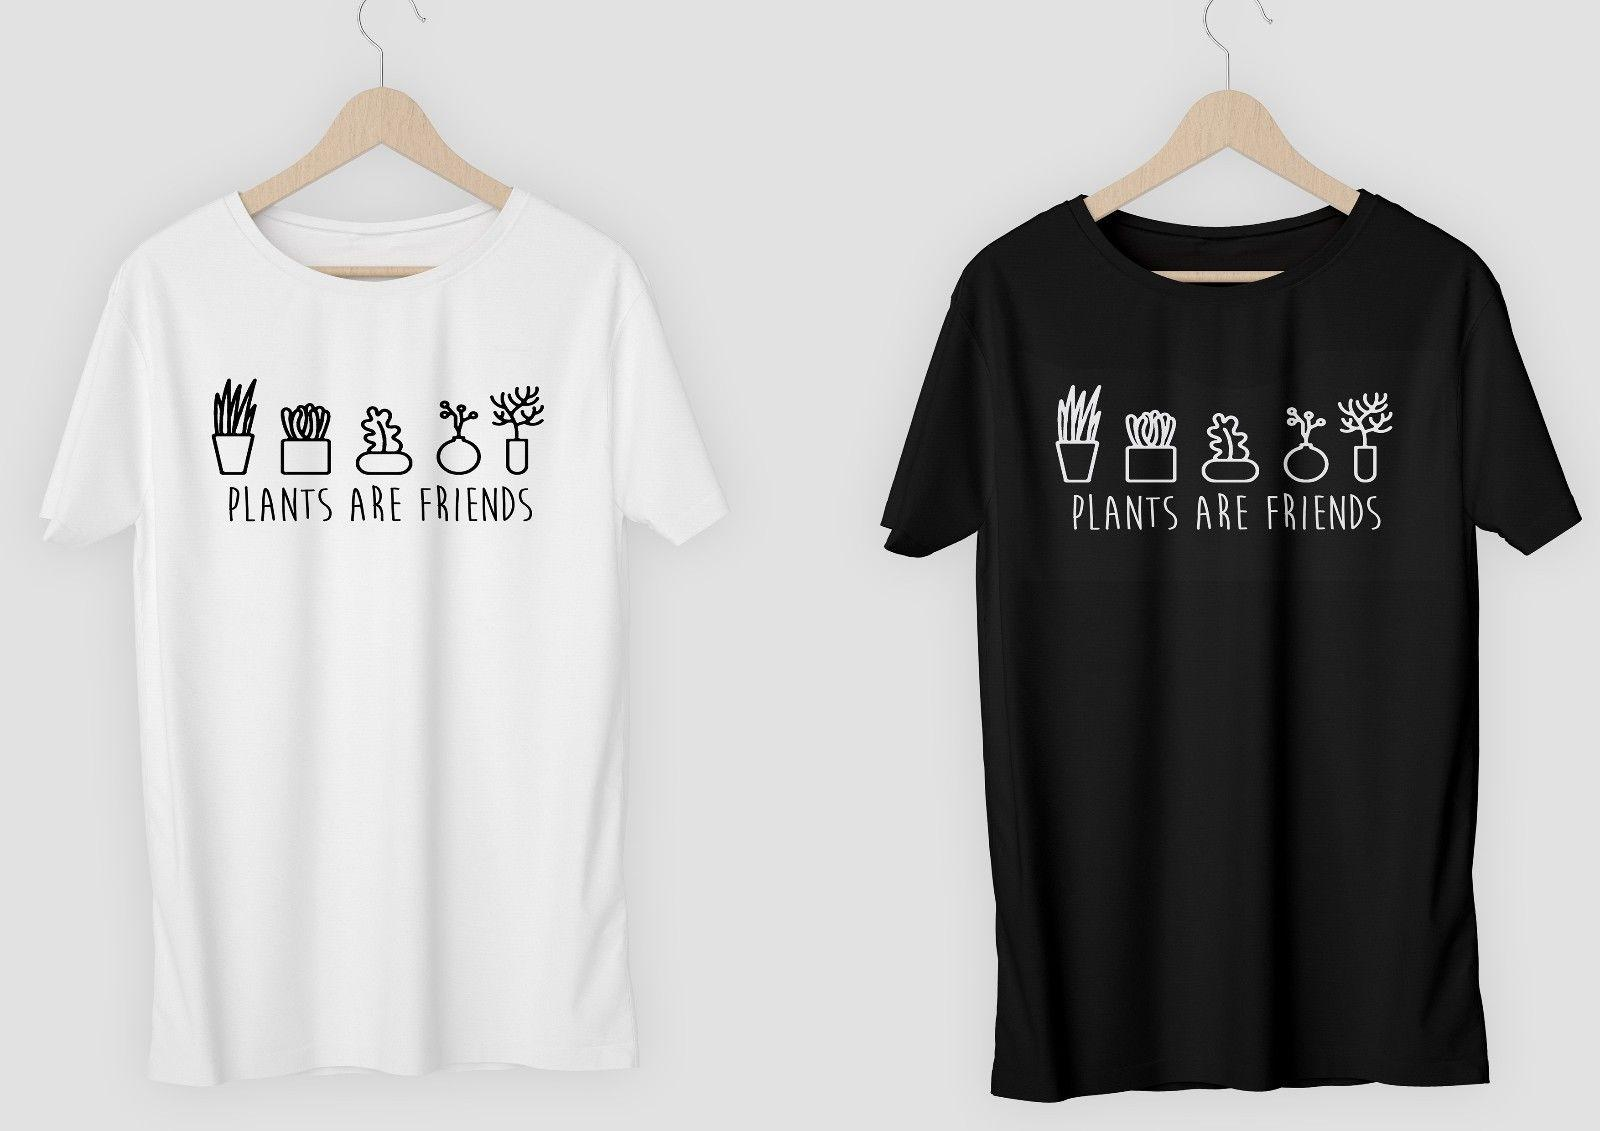 98cda99633c Plants Are Friends T Shirt Or DIY Vinyl Plants Hipster Tumblr Vegan Free  Postage Funny Unisex Casual Tee Gift Top T Shirt Logos Trendy T Shirts From  ...